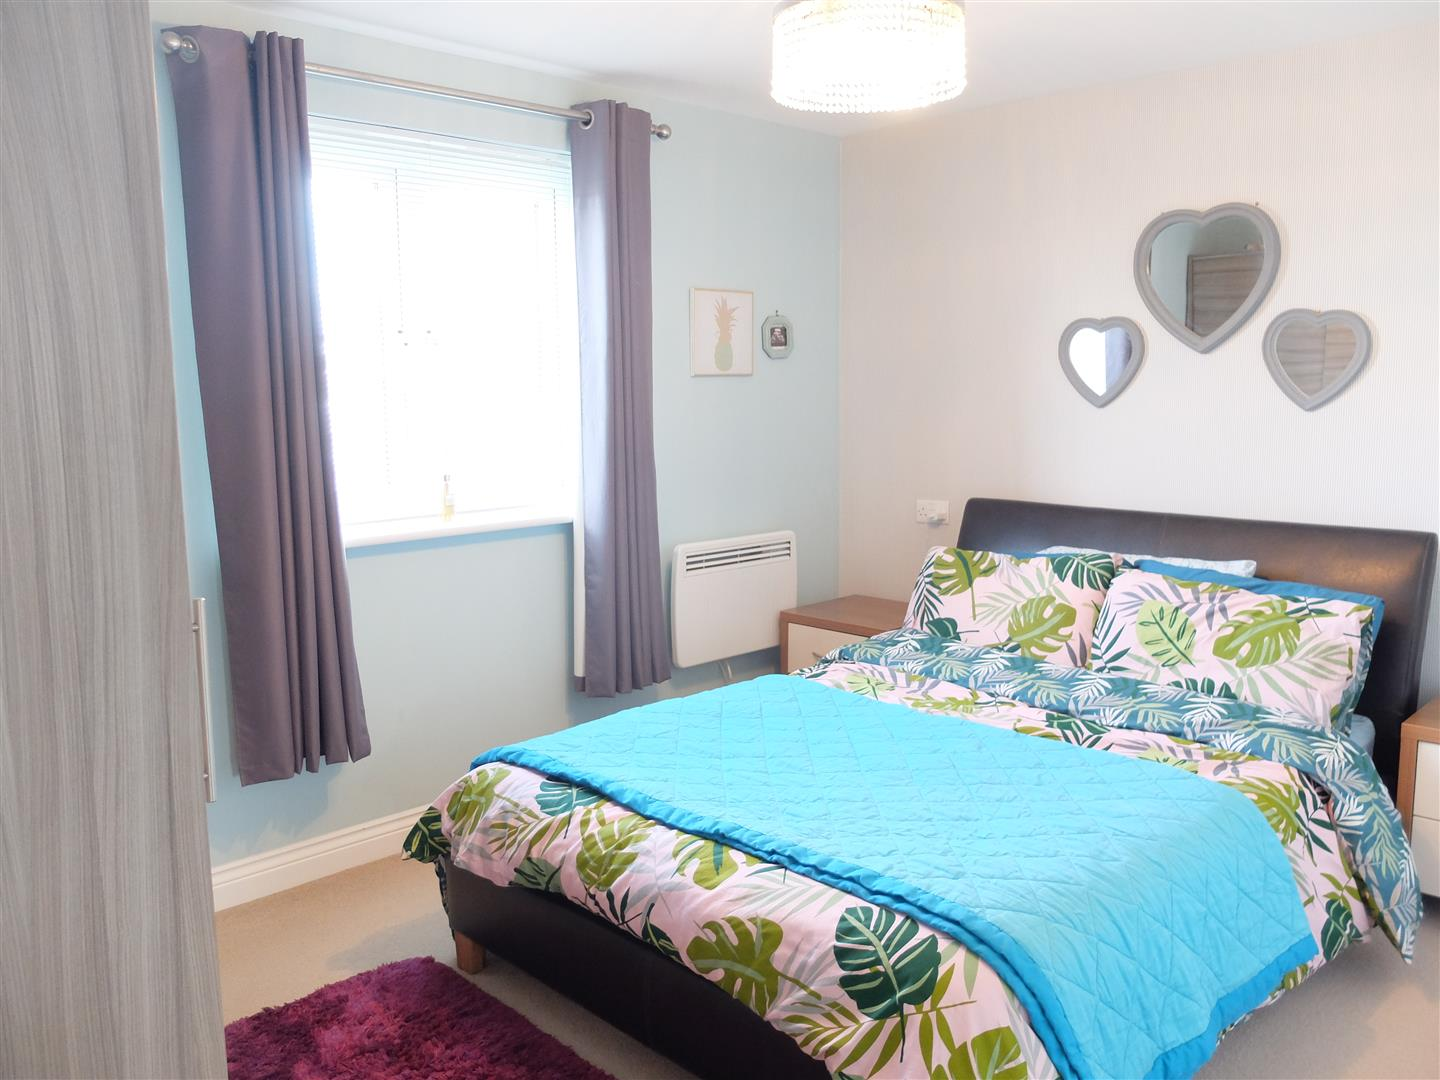 73 Lowry Gardens Carlisle 2 Bedrooms Flat For Sale 110,000